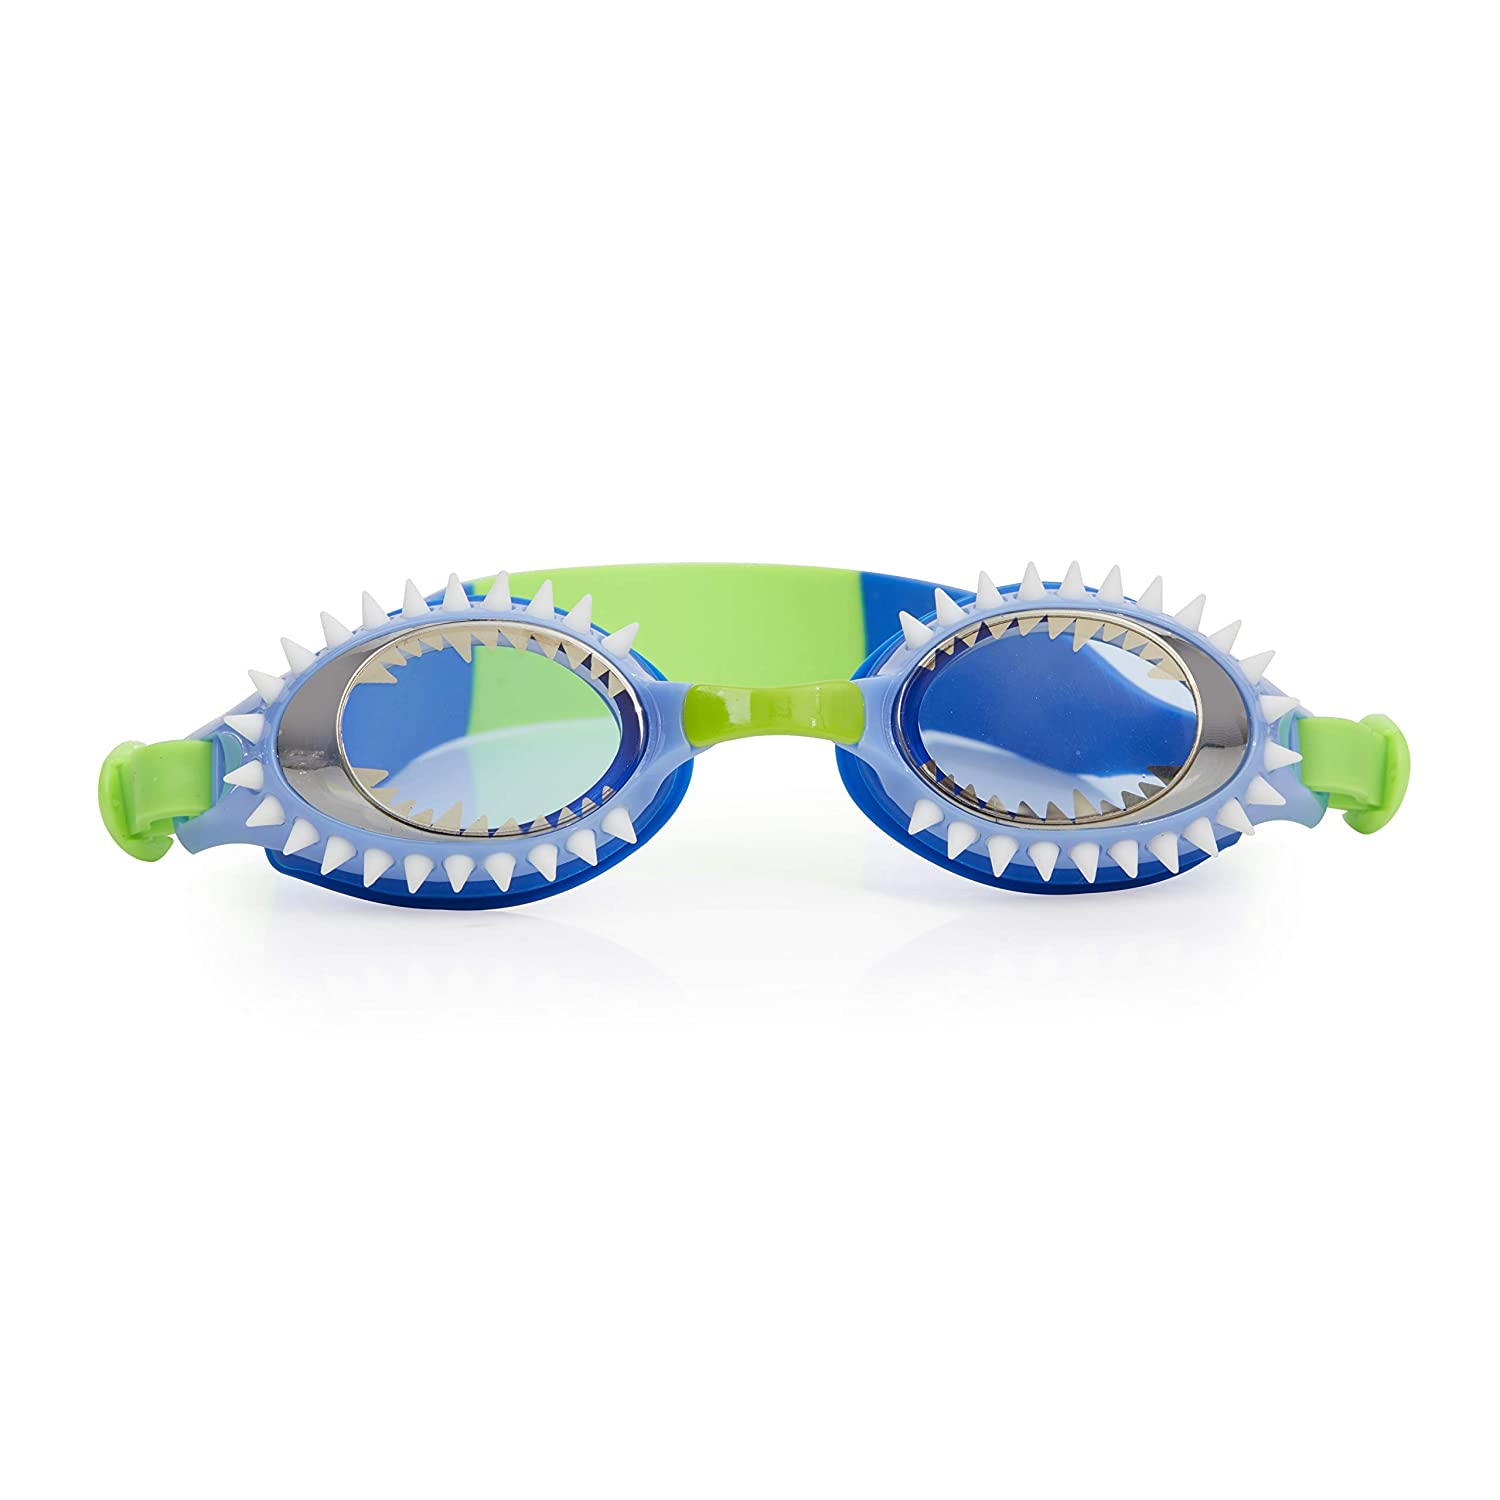 Bling 2O Kids Swimming Goggles - Shark Teeth Swim Goggles for Boys - Anti Fog, No Leak, Non Slip, UV Protection with Hard Travel Case - 8+